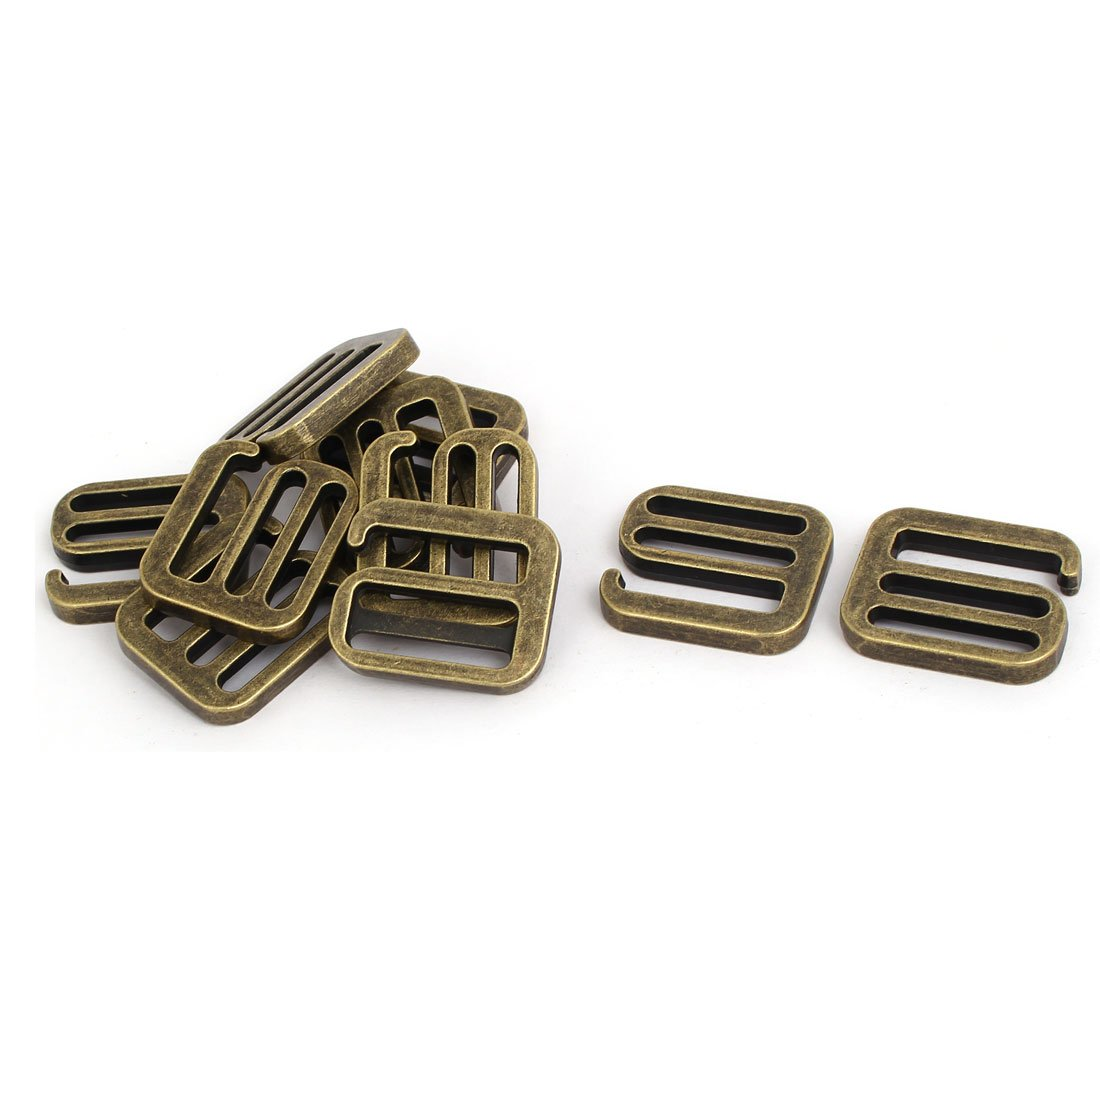 uxcell 33.5mmx28mmx5mm Strap Adjustable Buckle Rings Slides Hooks Bronze Tone 10pcs